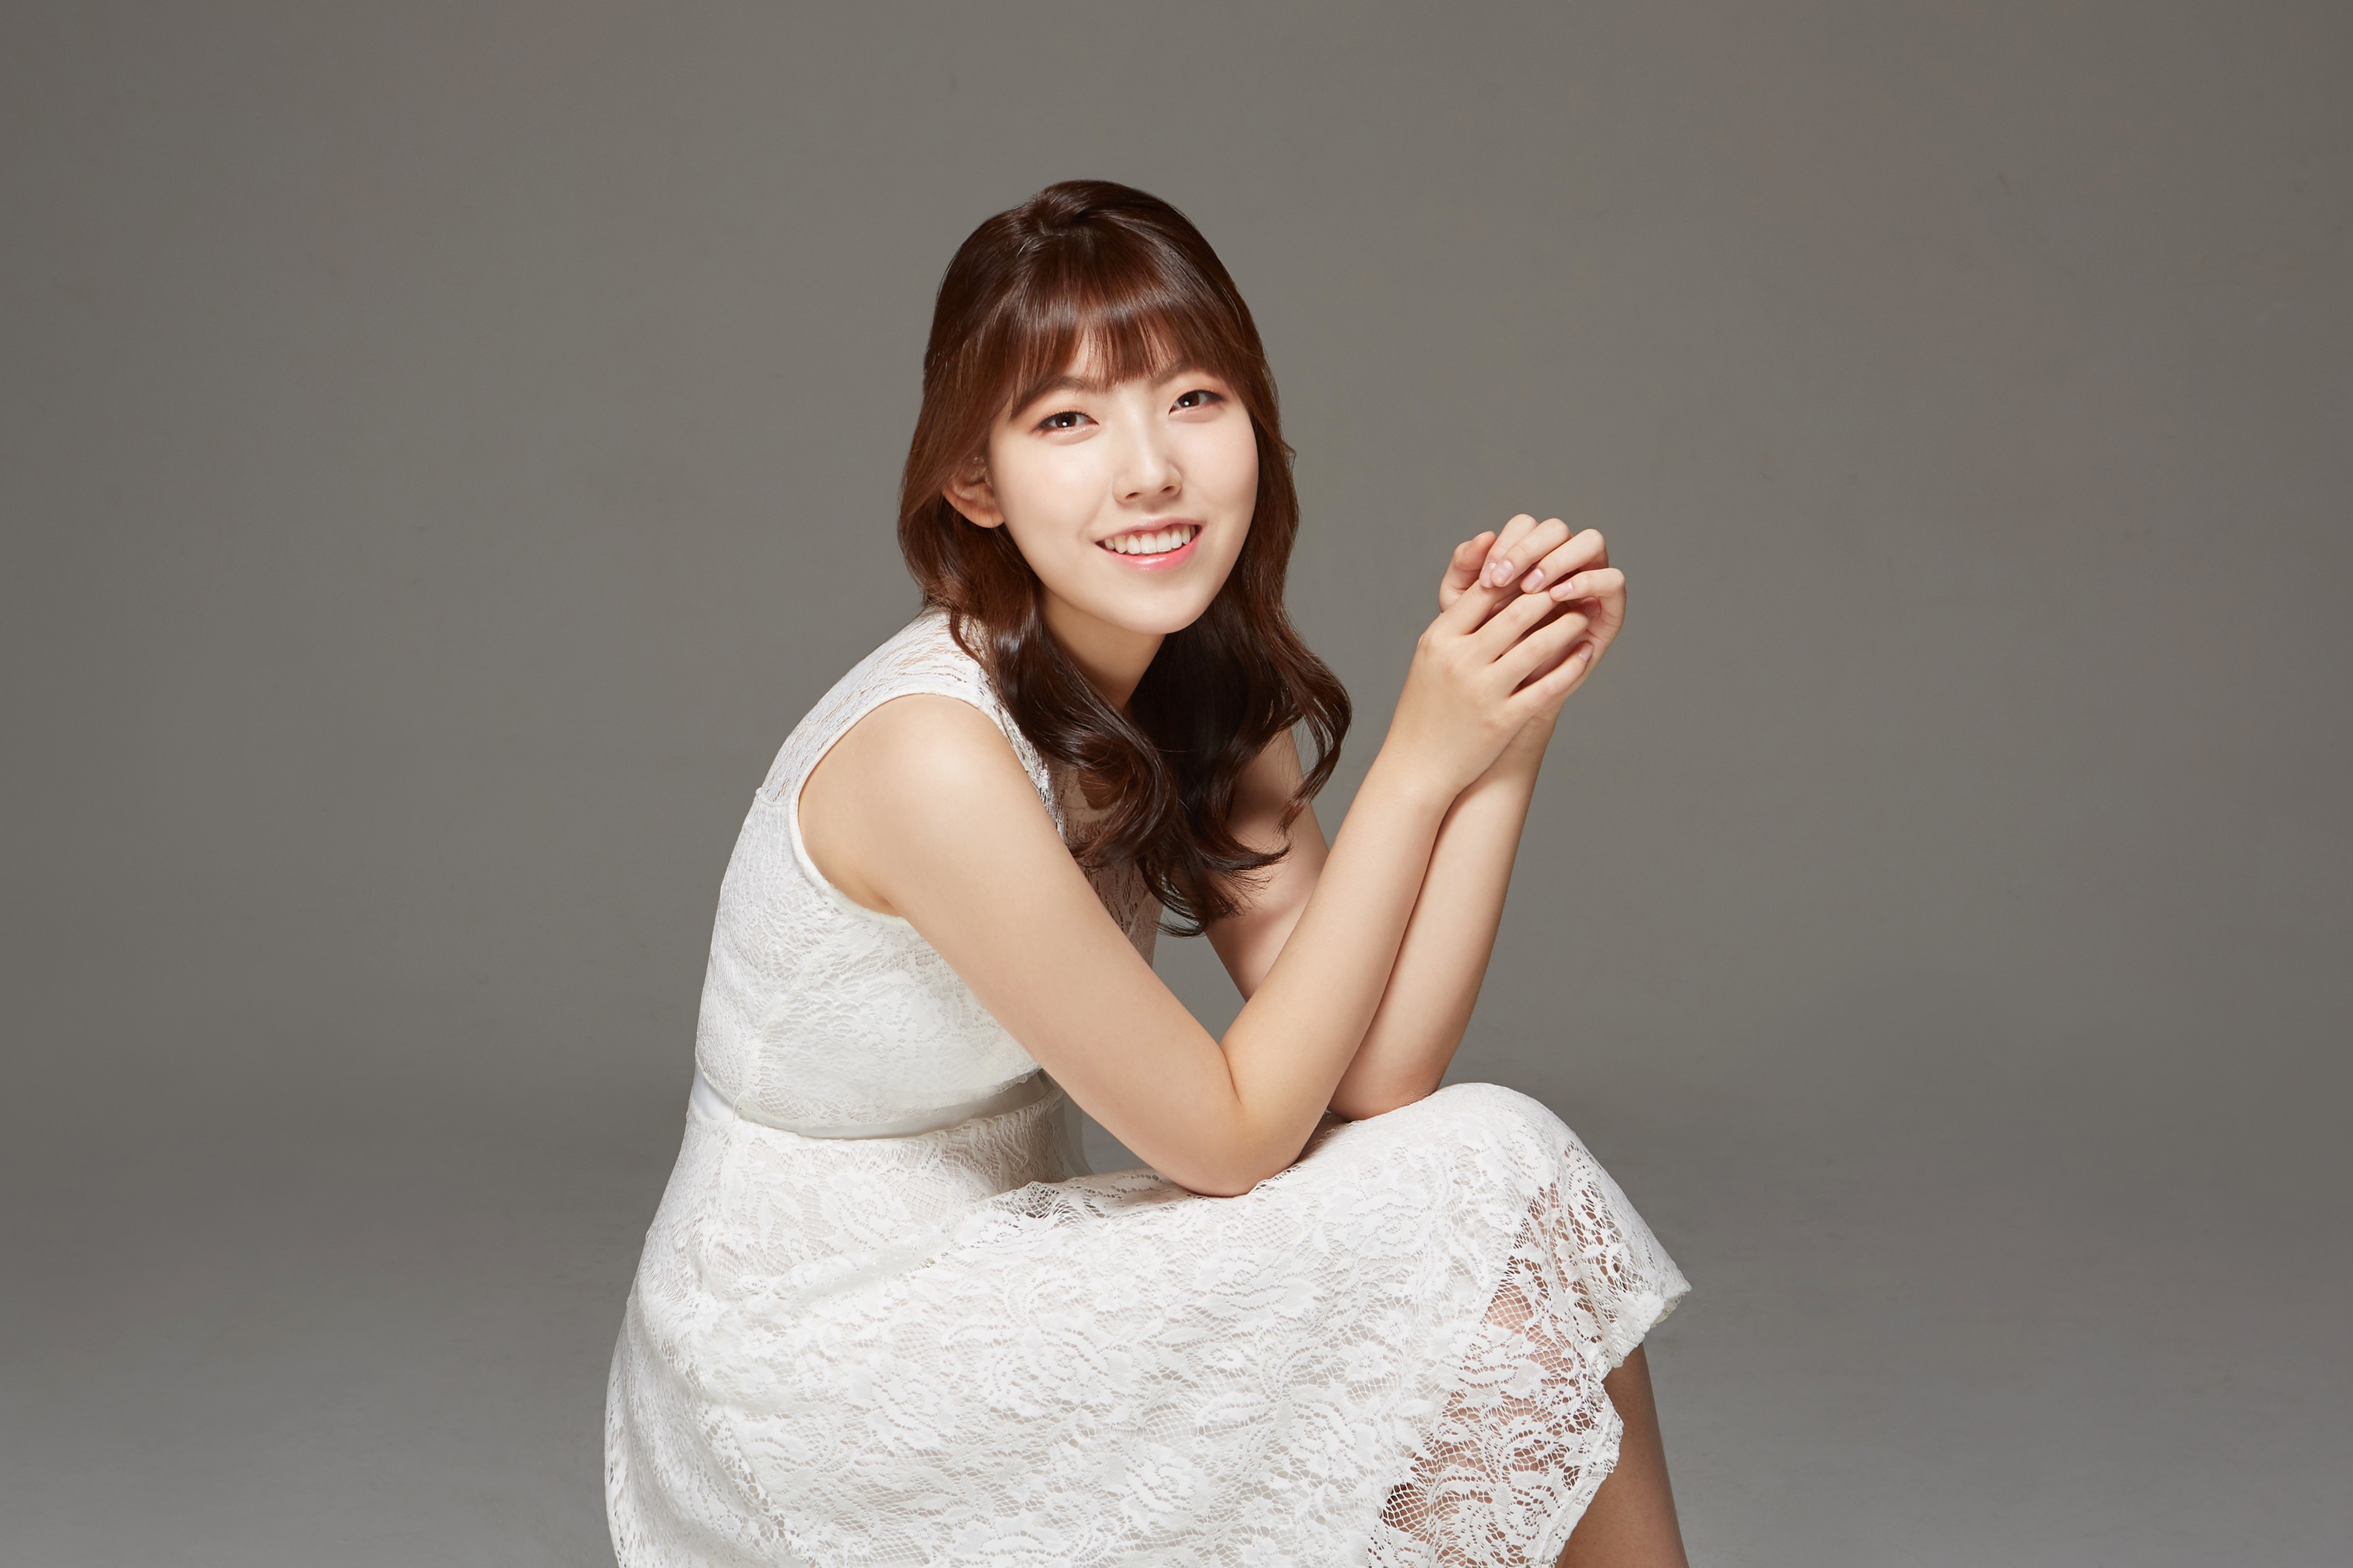 Composer SiHyun Uhm in a white dress, looking at the camera